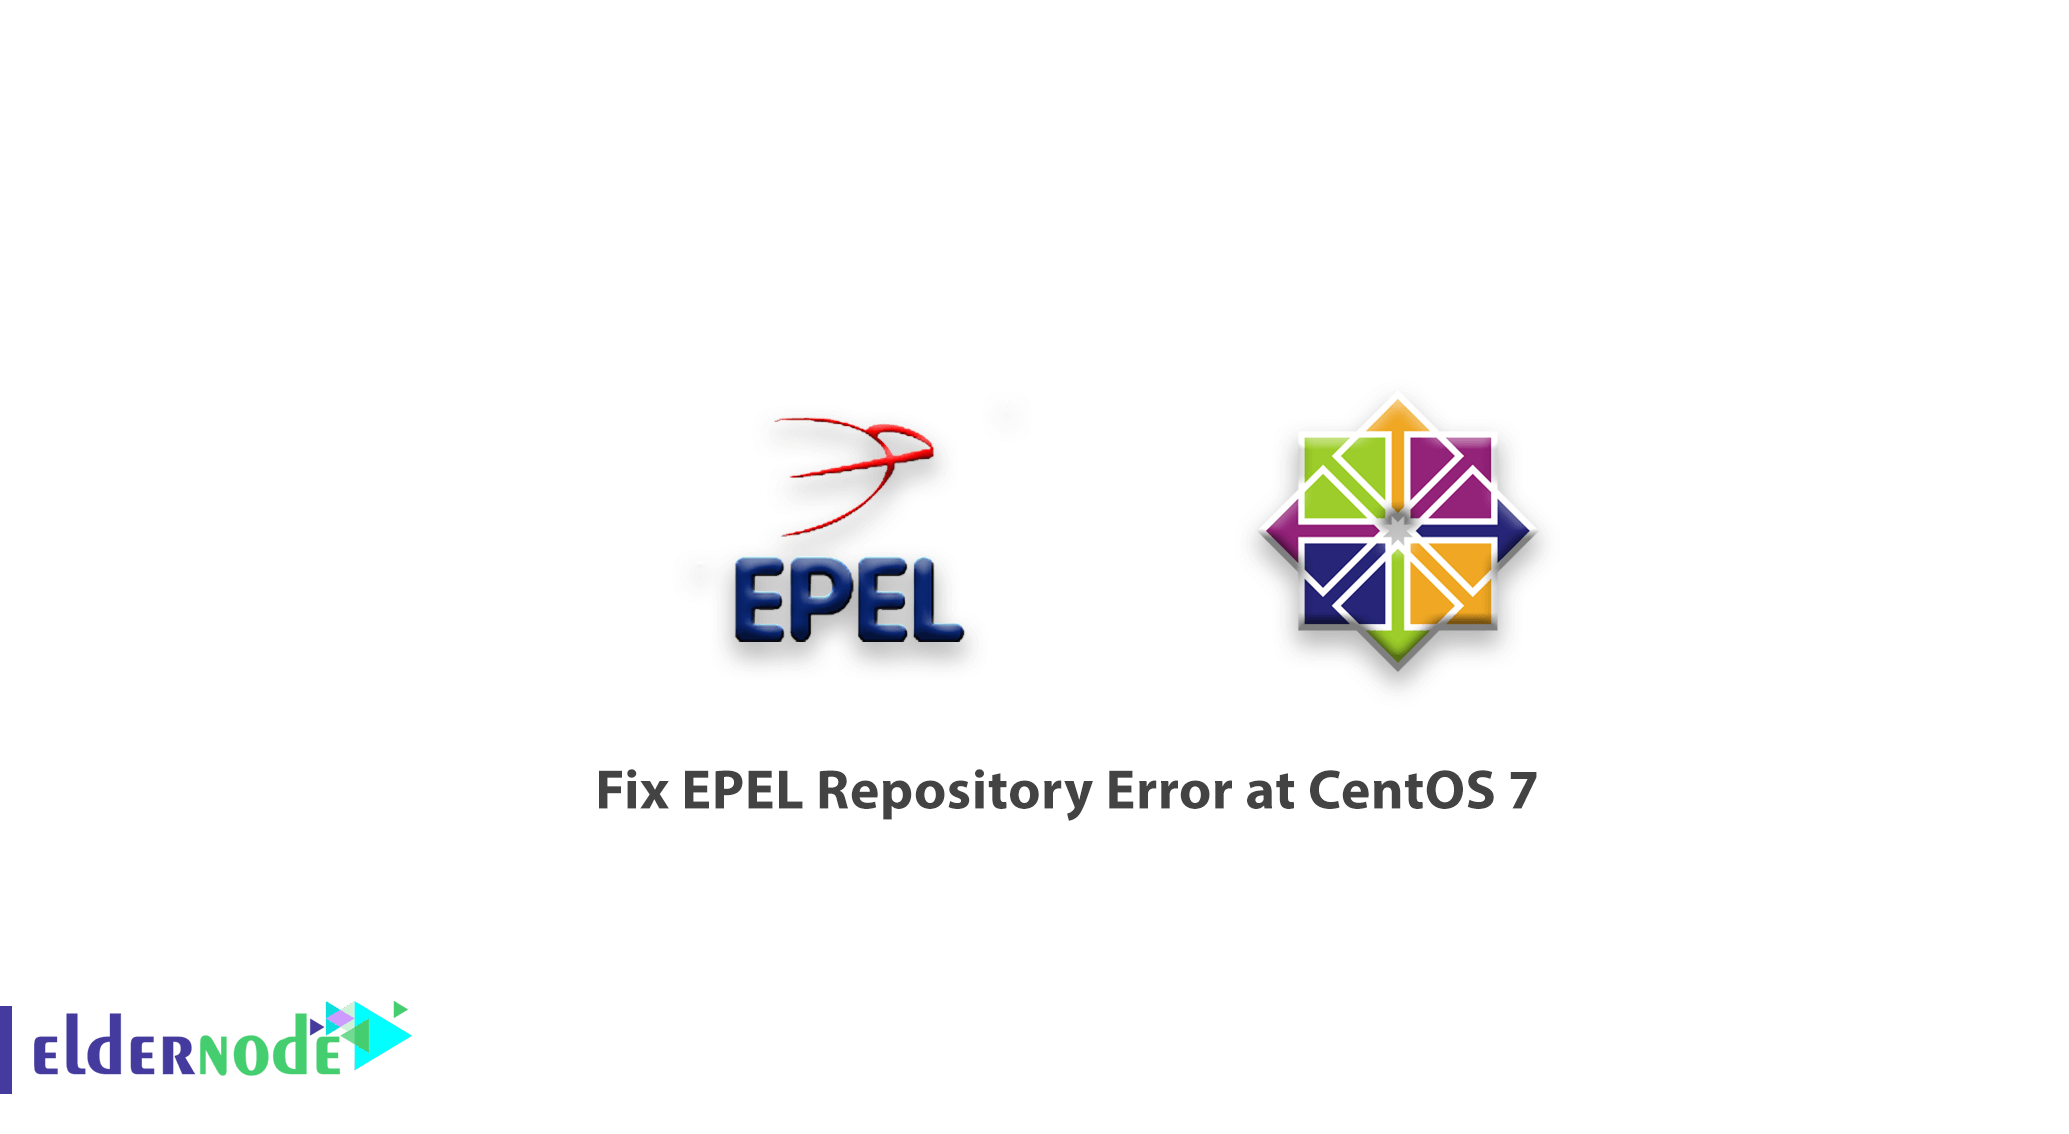 How to fix EPEL Repository Error at CentOS 7